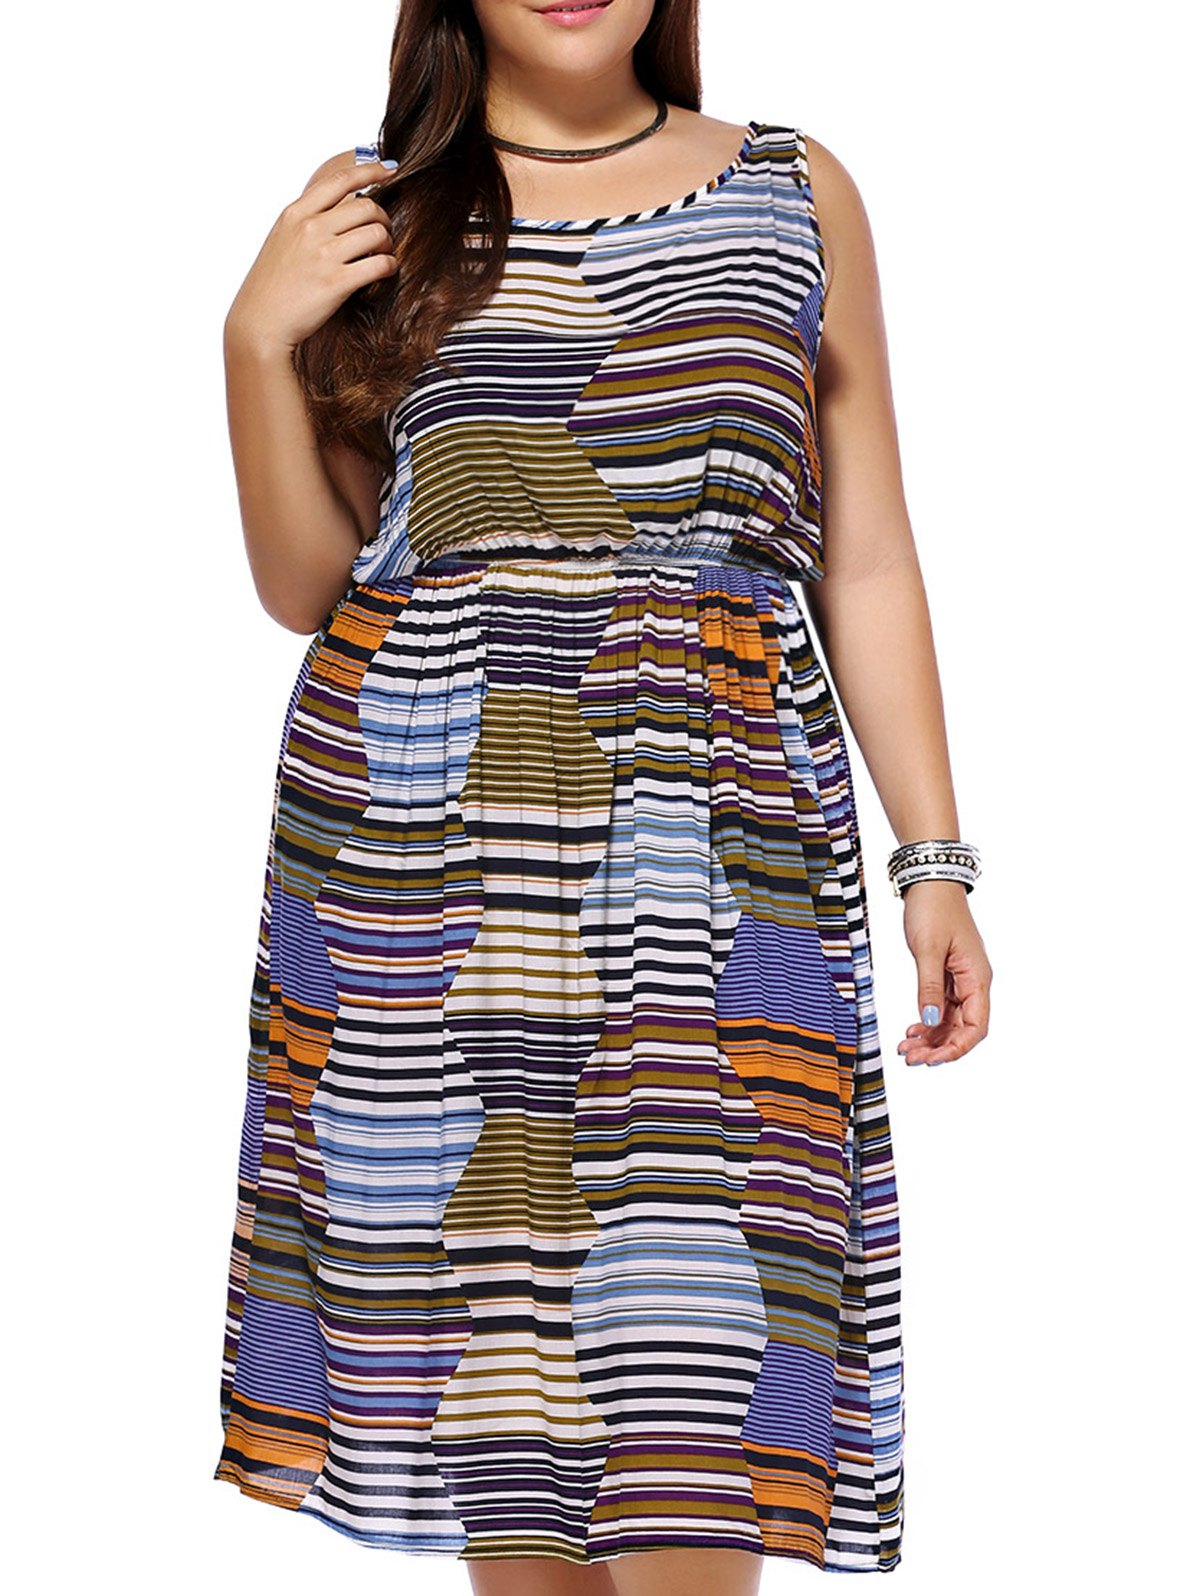 Bohemian Women's Plus Size Sleeveless Color Block Striped Dress